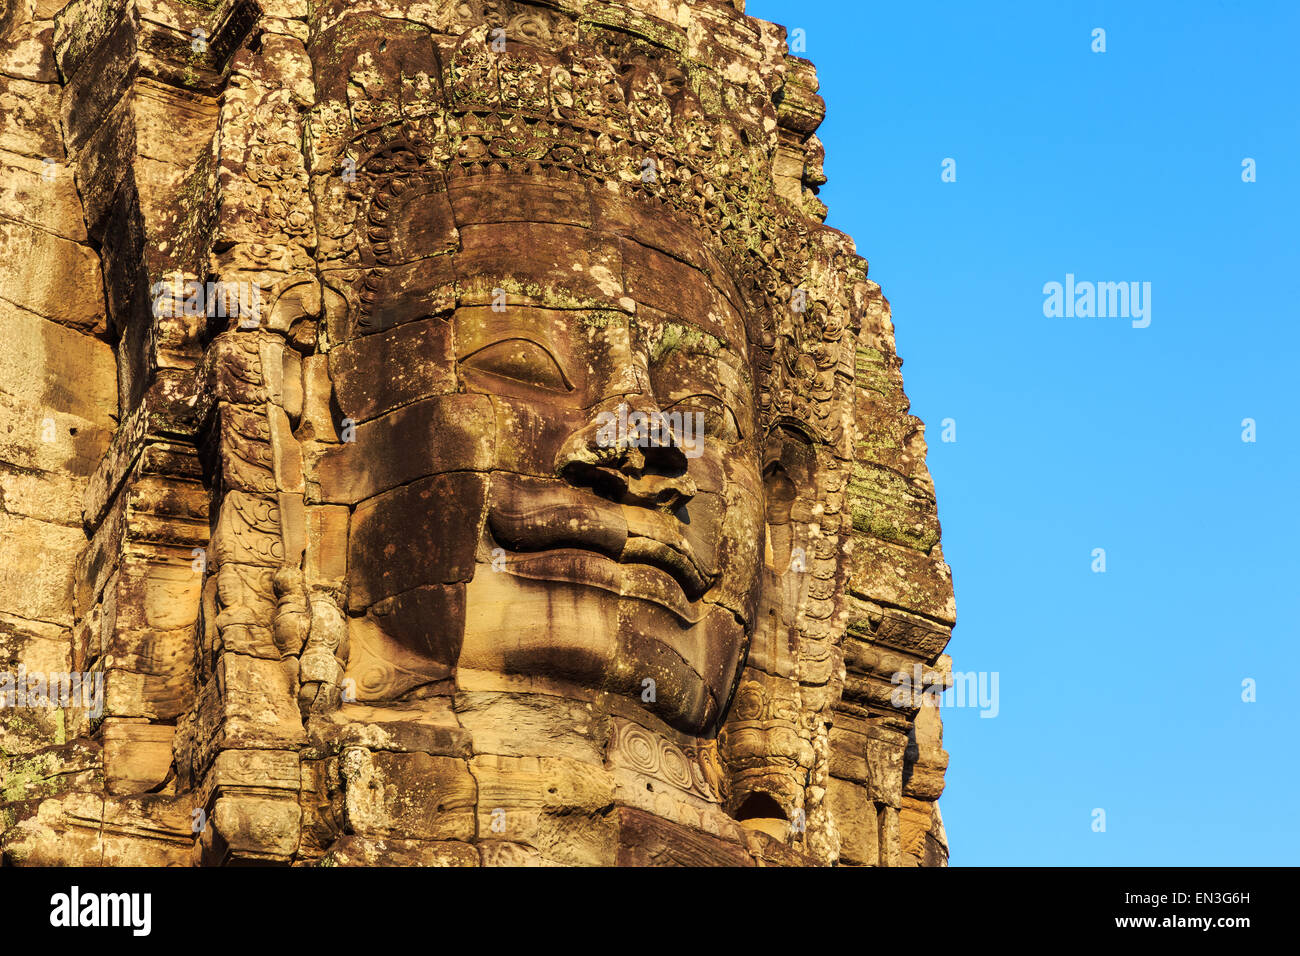 Stone face towers of Bayon Temple at ancient Angkor. Siem Reap, Cambodia - Stock Image